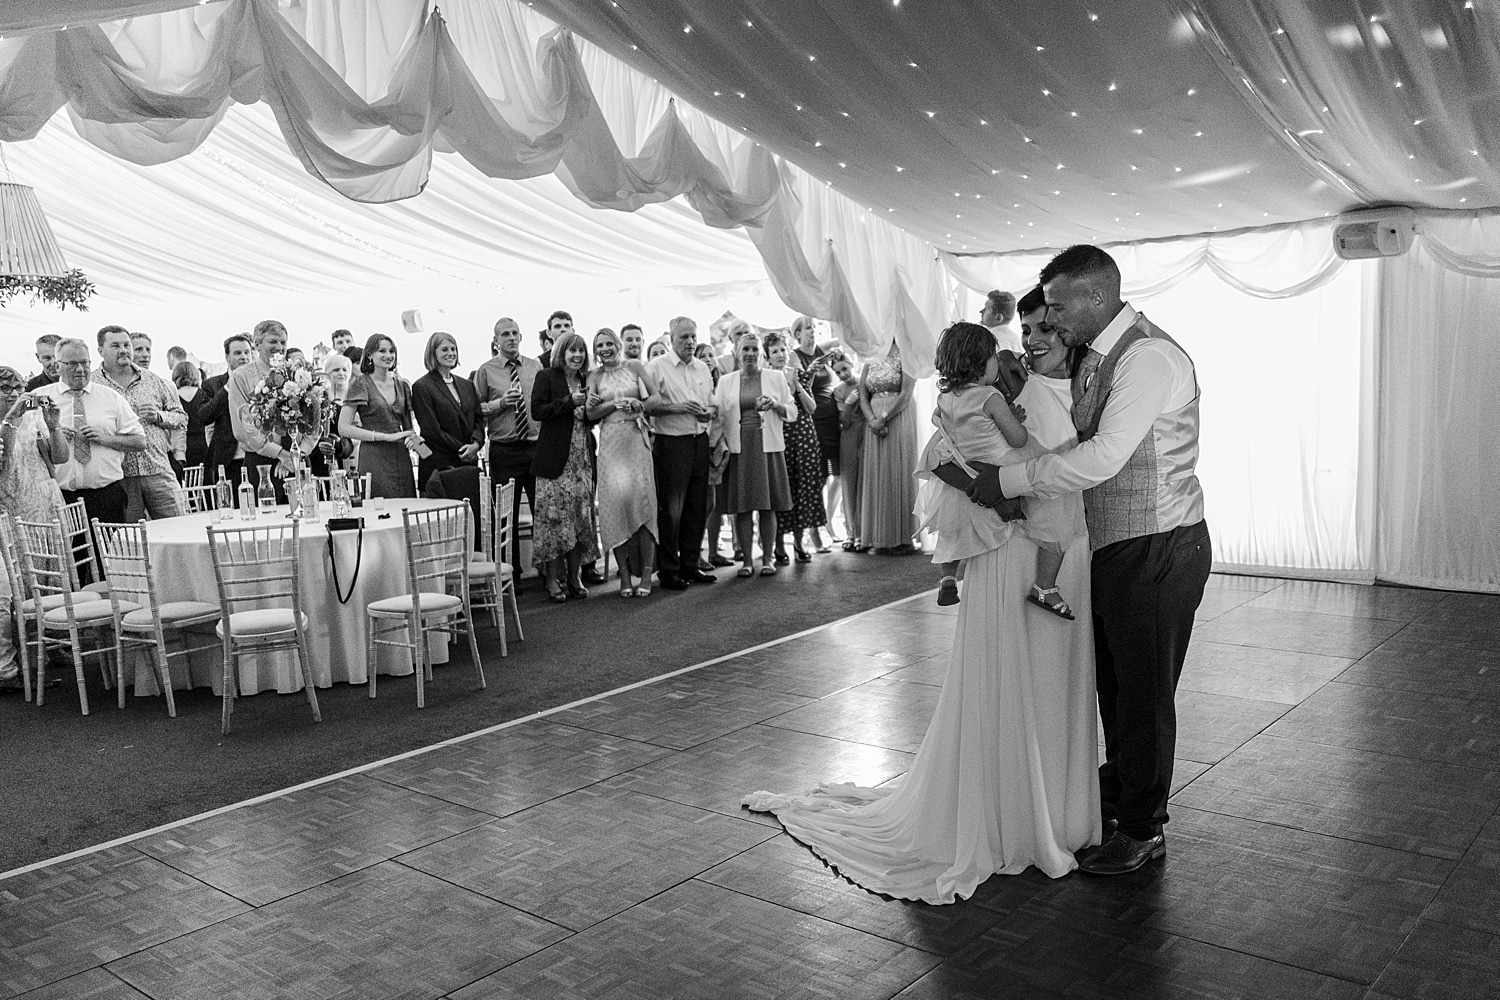 Bride and groom perform first dance with child